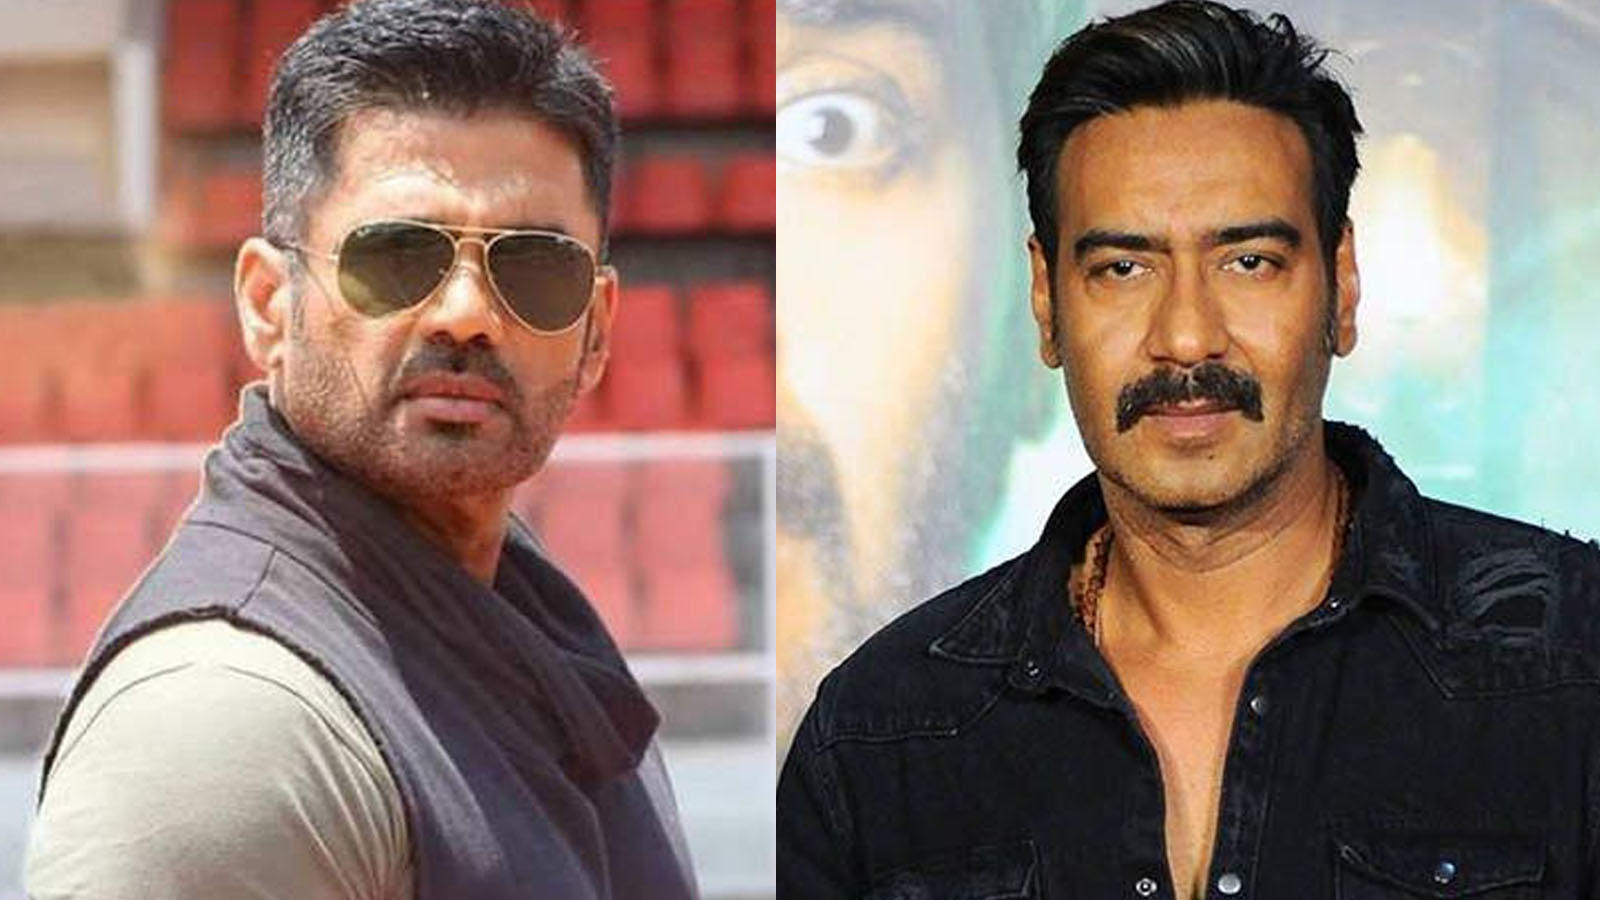 Ajay Devgn to set up COVID-19 ICUs; Suniel Shetty starts initiative to provide free oxygen concentrators | Hindi Movie News – Bollywood – Times of India